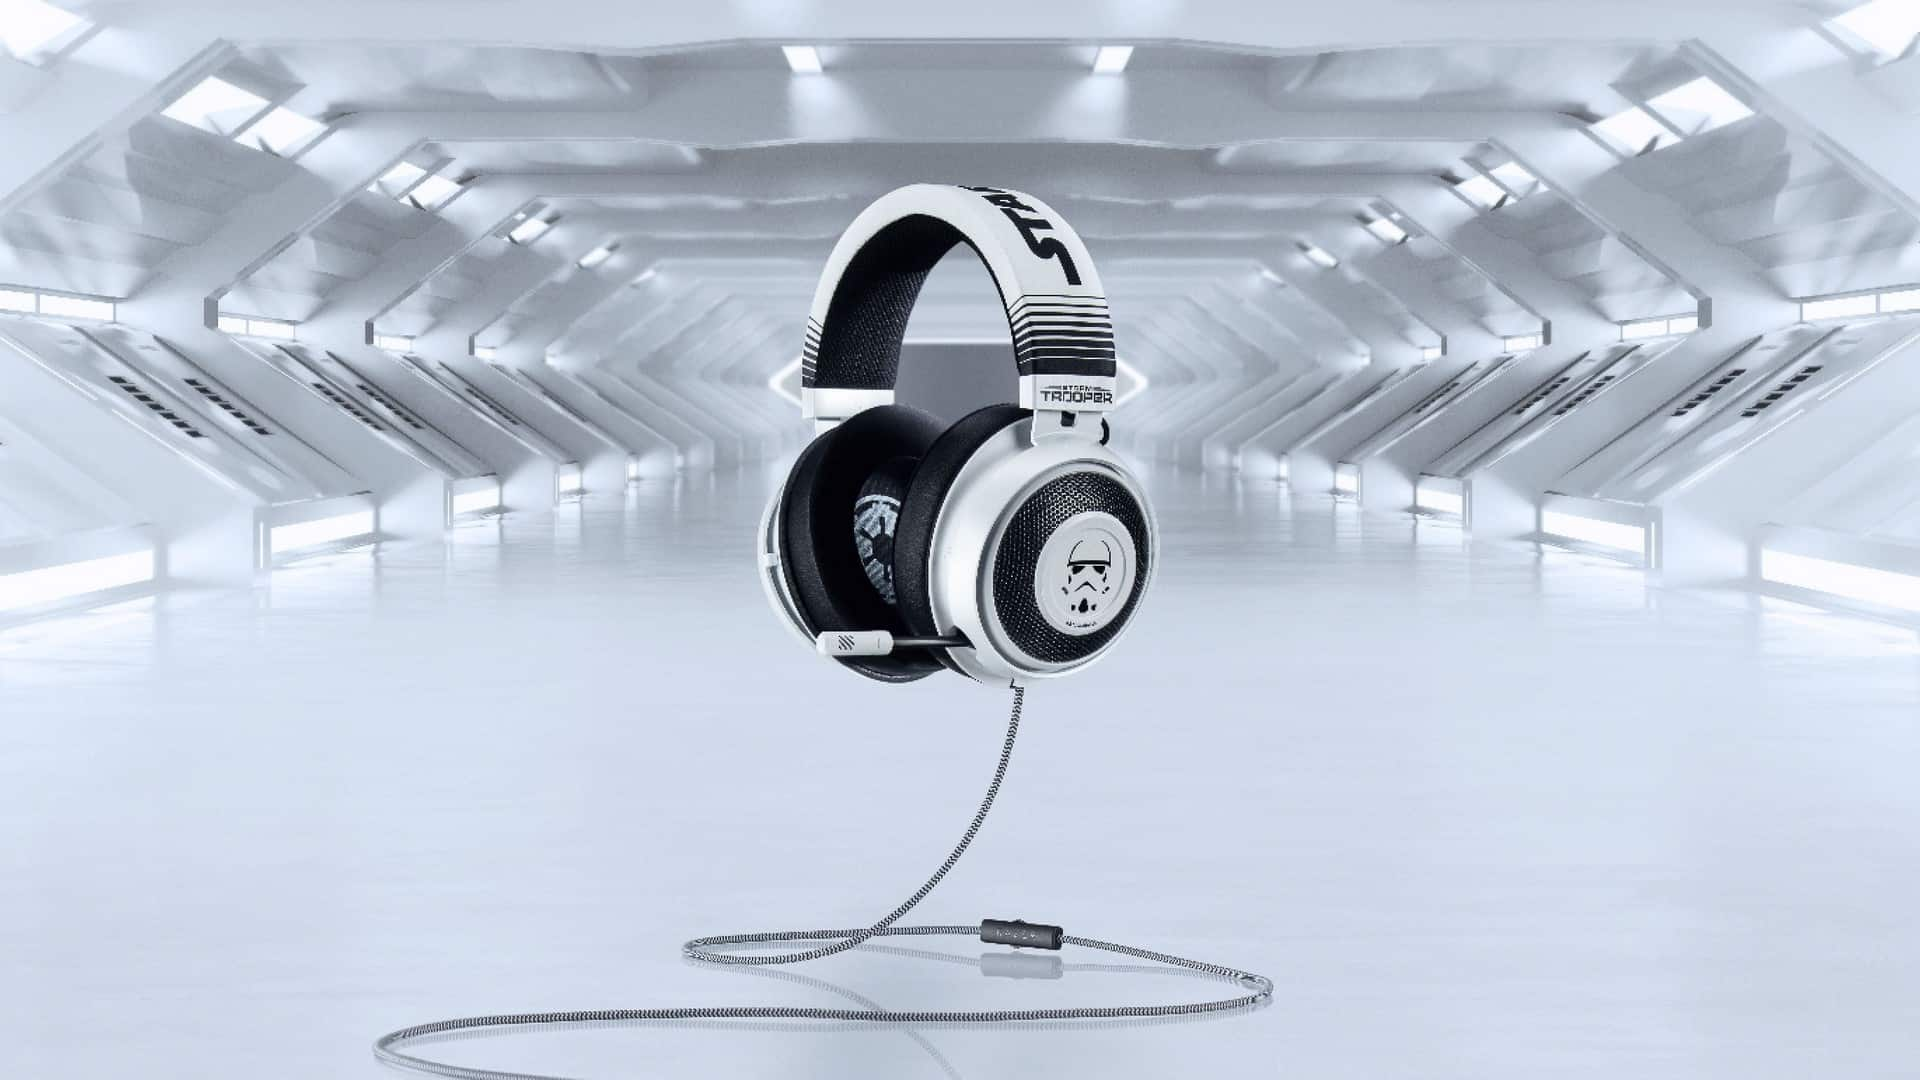 Show Your Allegiance To The Galactic Empire With The Stormtrooper Edition Of The Kraken Headset